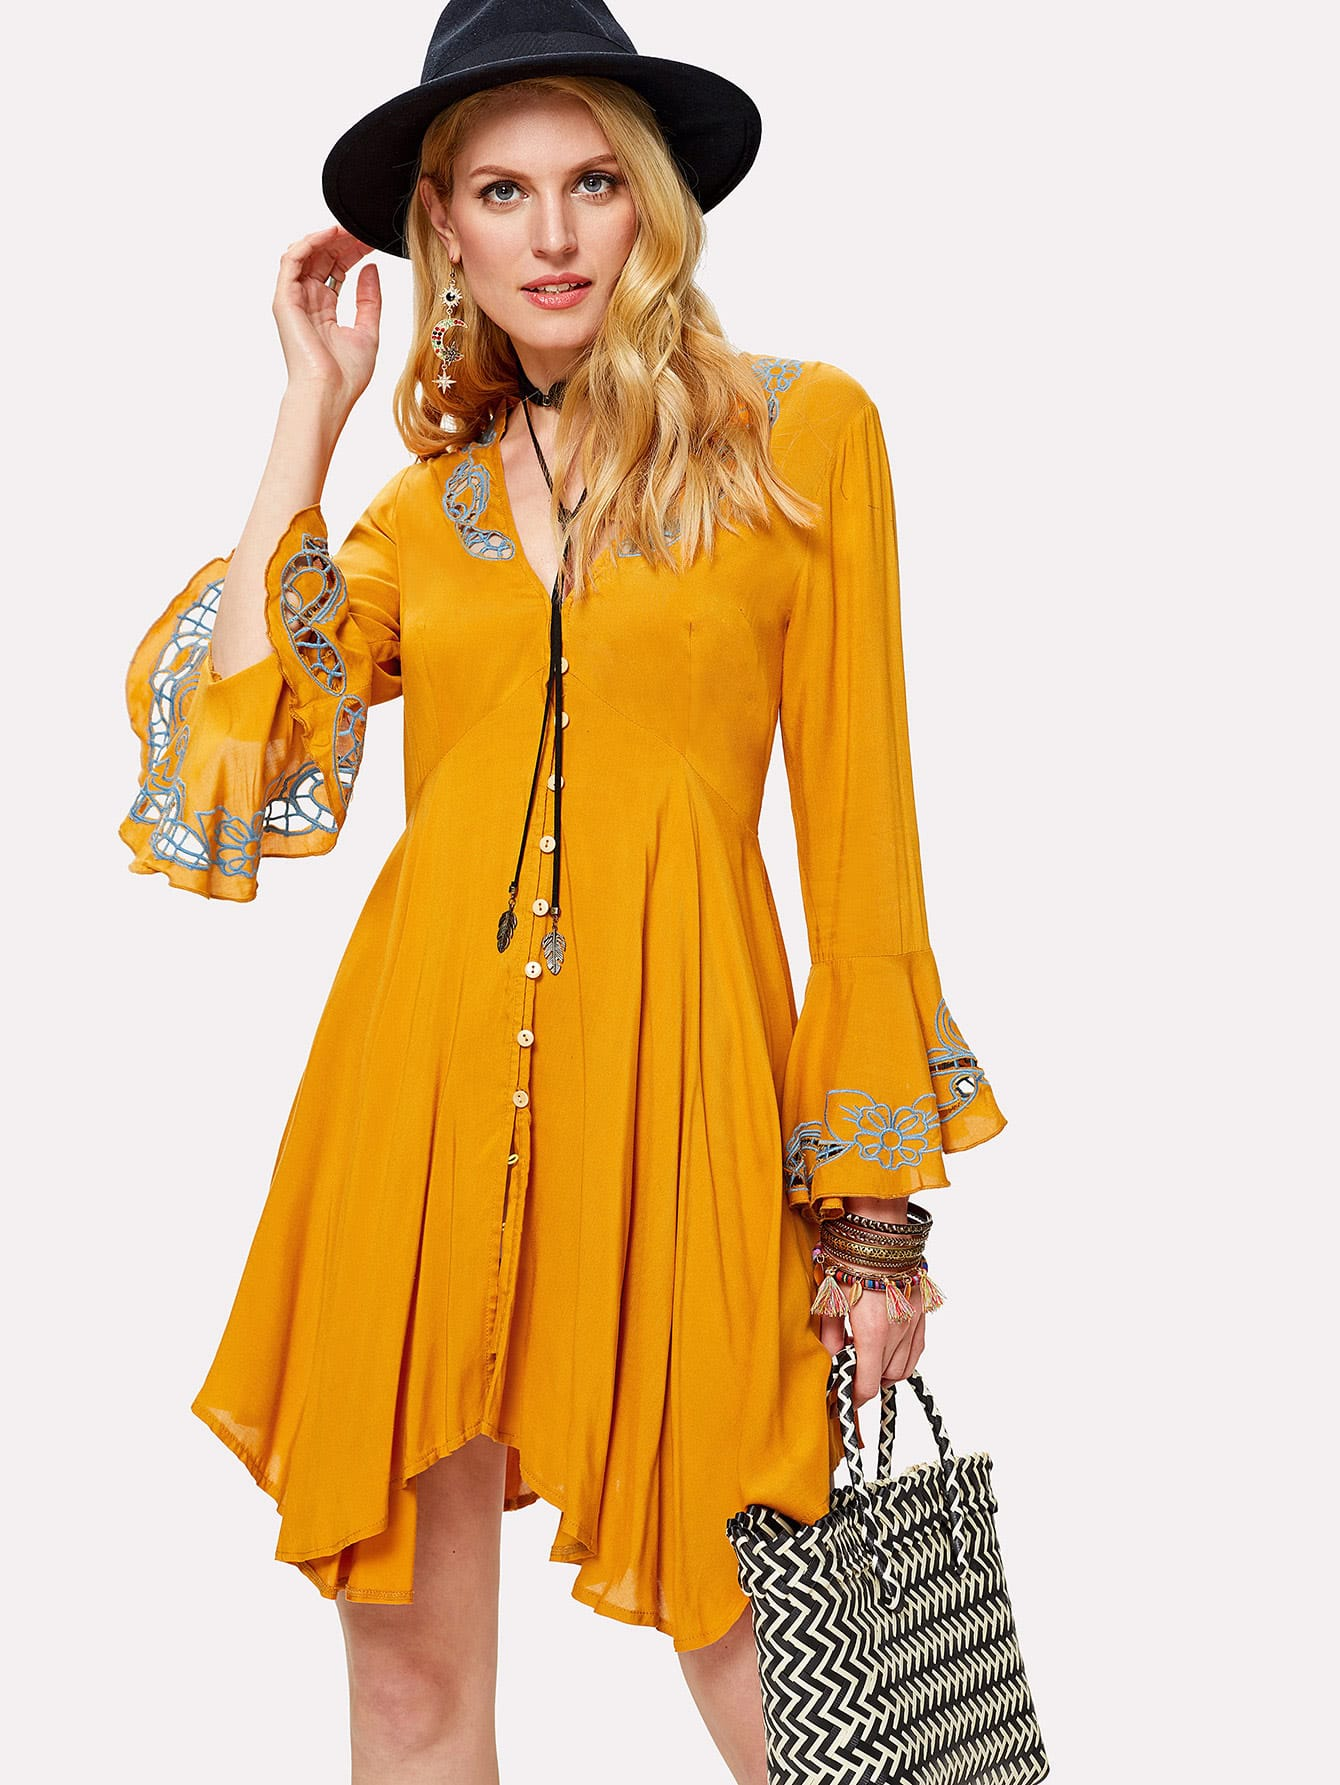 Eyelet Embroidered Button Up Hanky Hem Dress embroidered double layer asym hem sheath dress